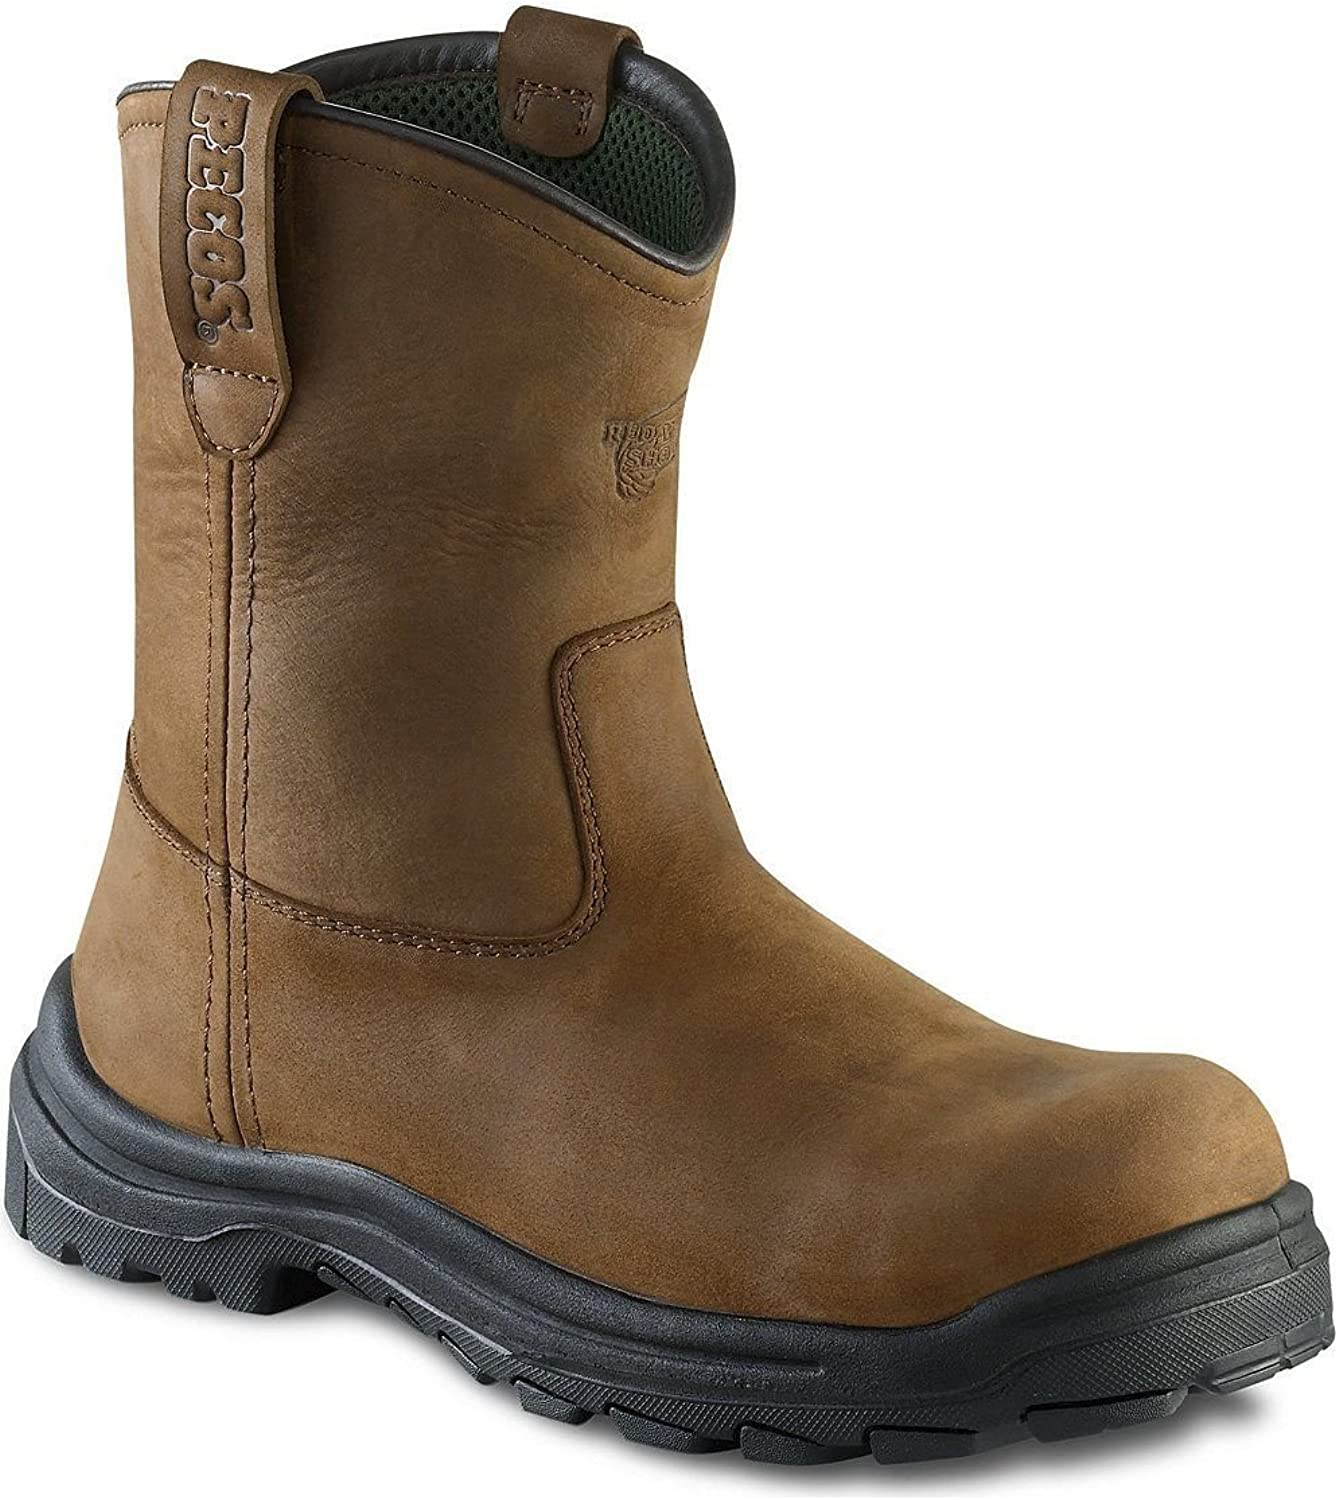 3274 RED WING MEN'S 9-INCH PULL-ON SAFETY BOOT BROWN RIGGER STYLE (UK - 10.5)